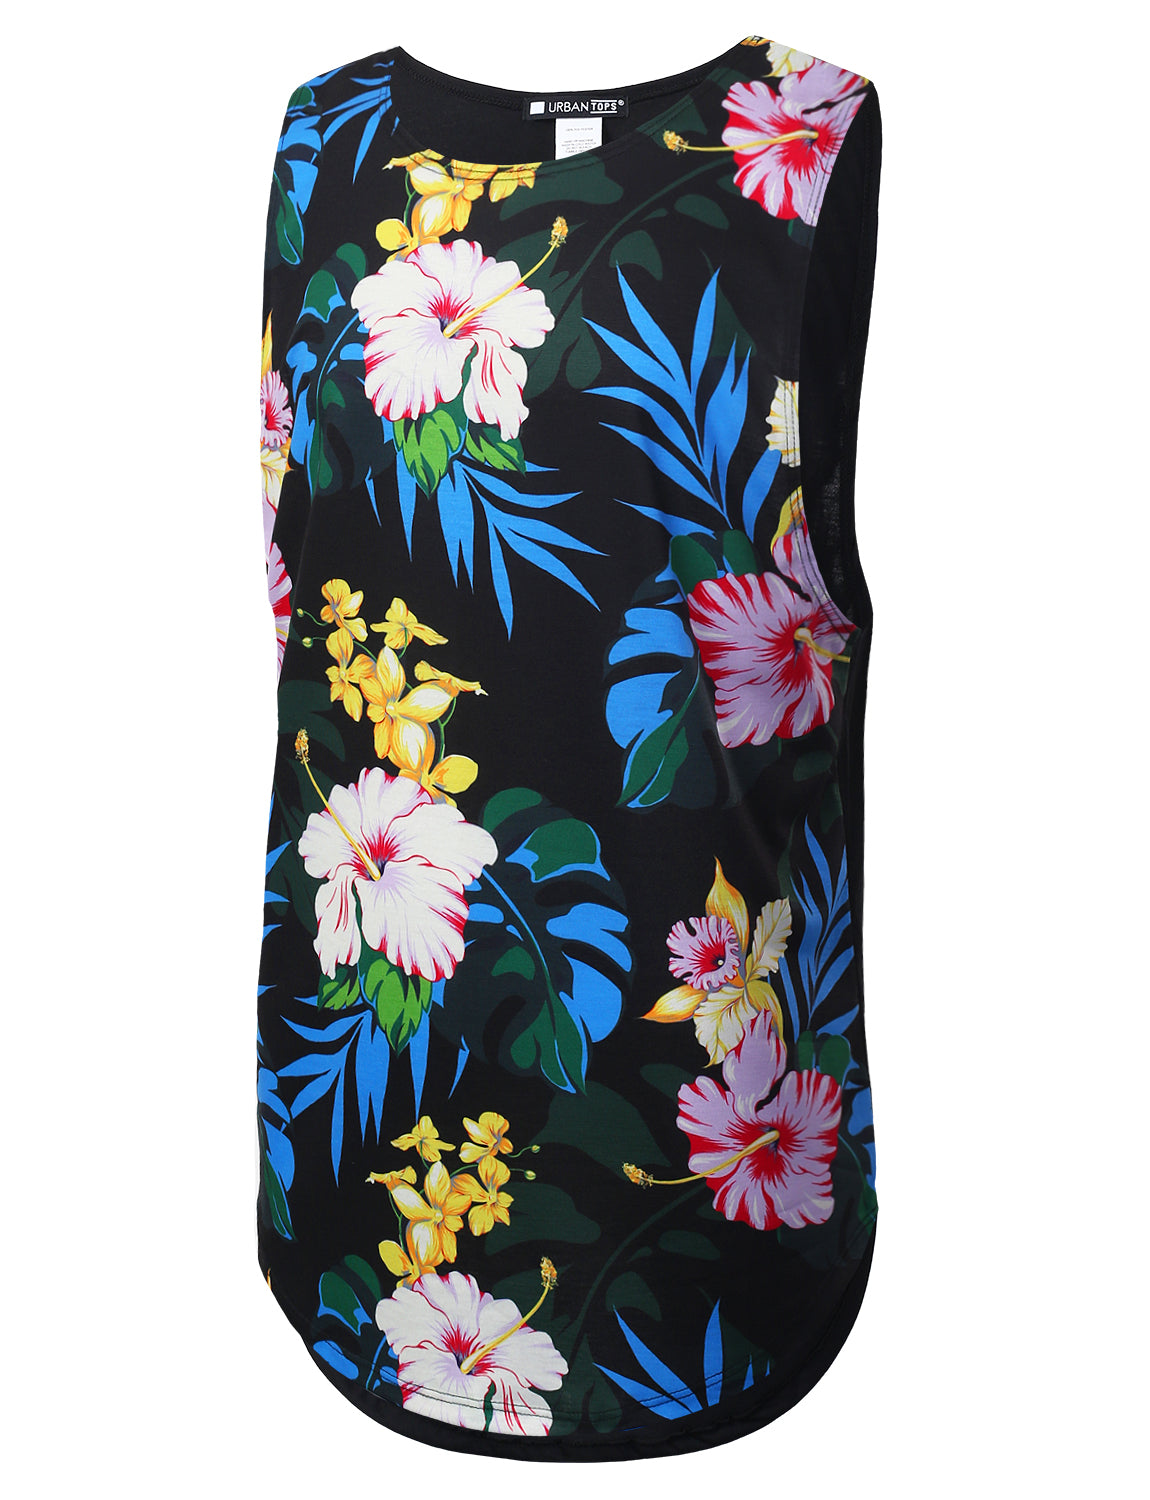 BLACK Hawaiian Floral Print Muscle Tank Top